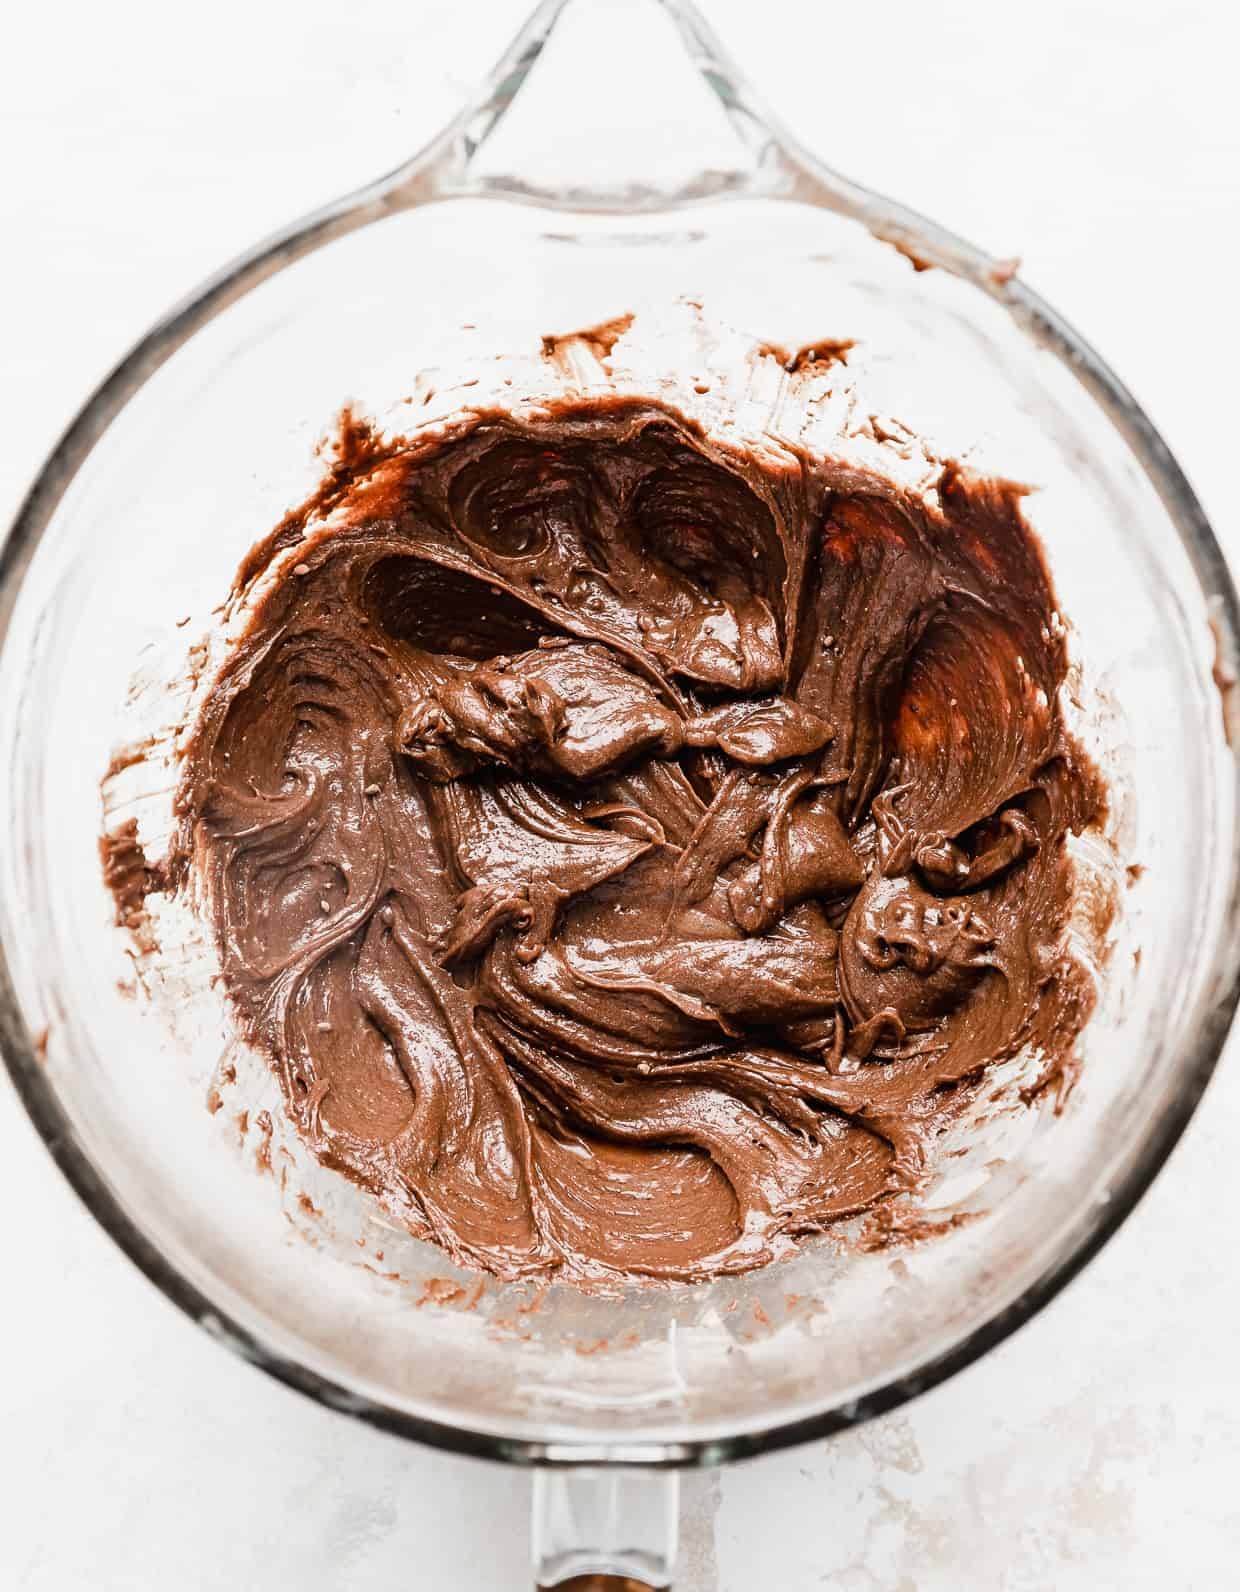 A glass mixing bowl full of lunch lady brownie batter, against a white background.